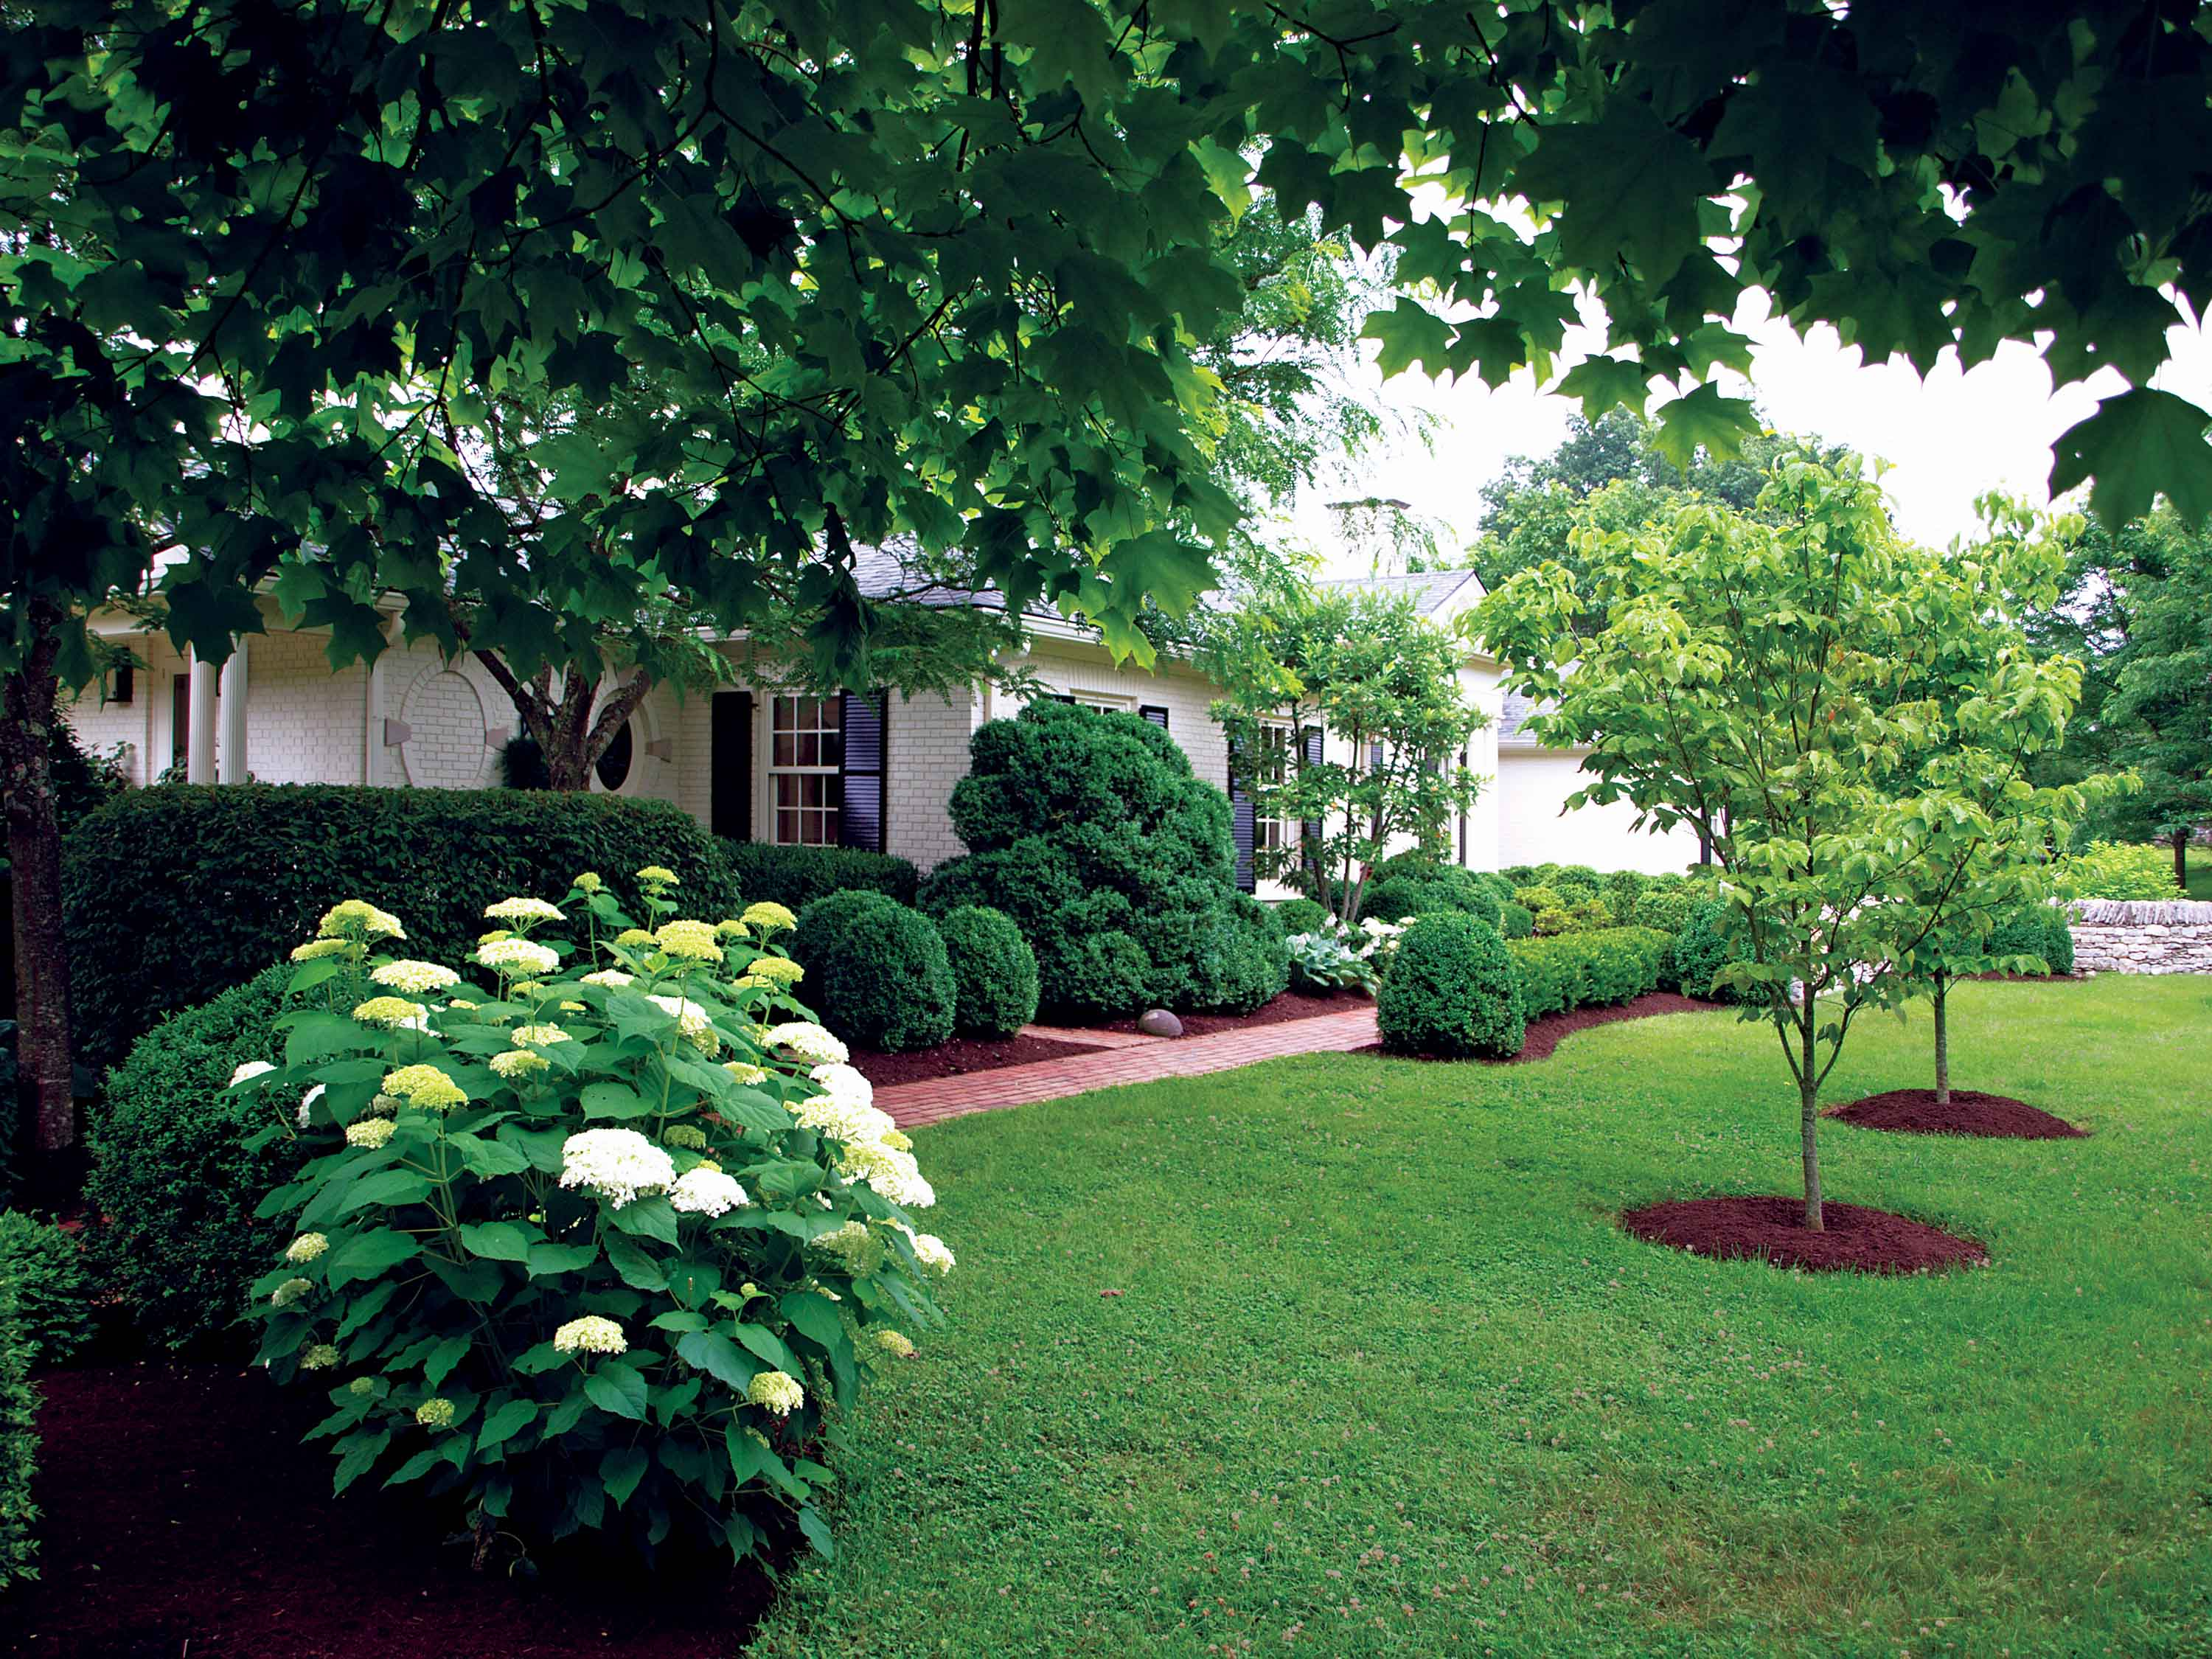 Tree care service fertilization insect and disease control for Tree and garden services